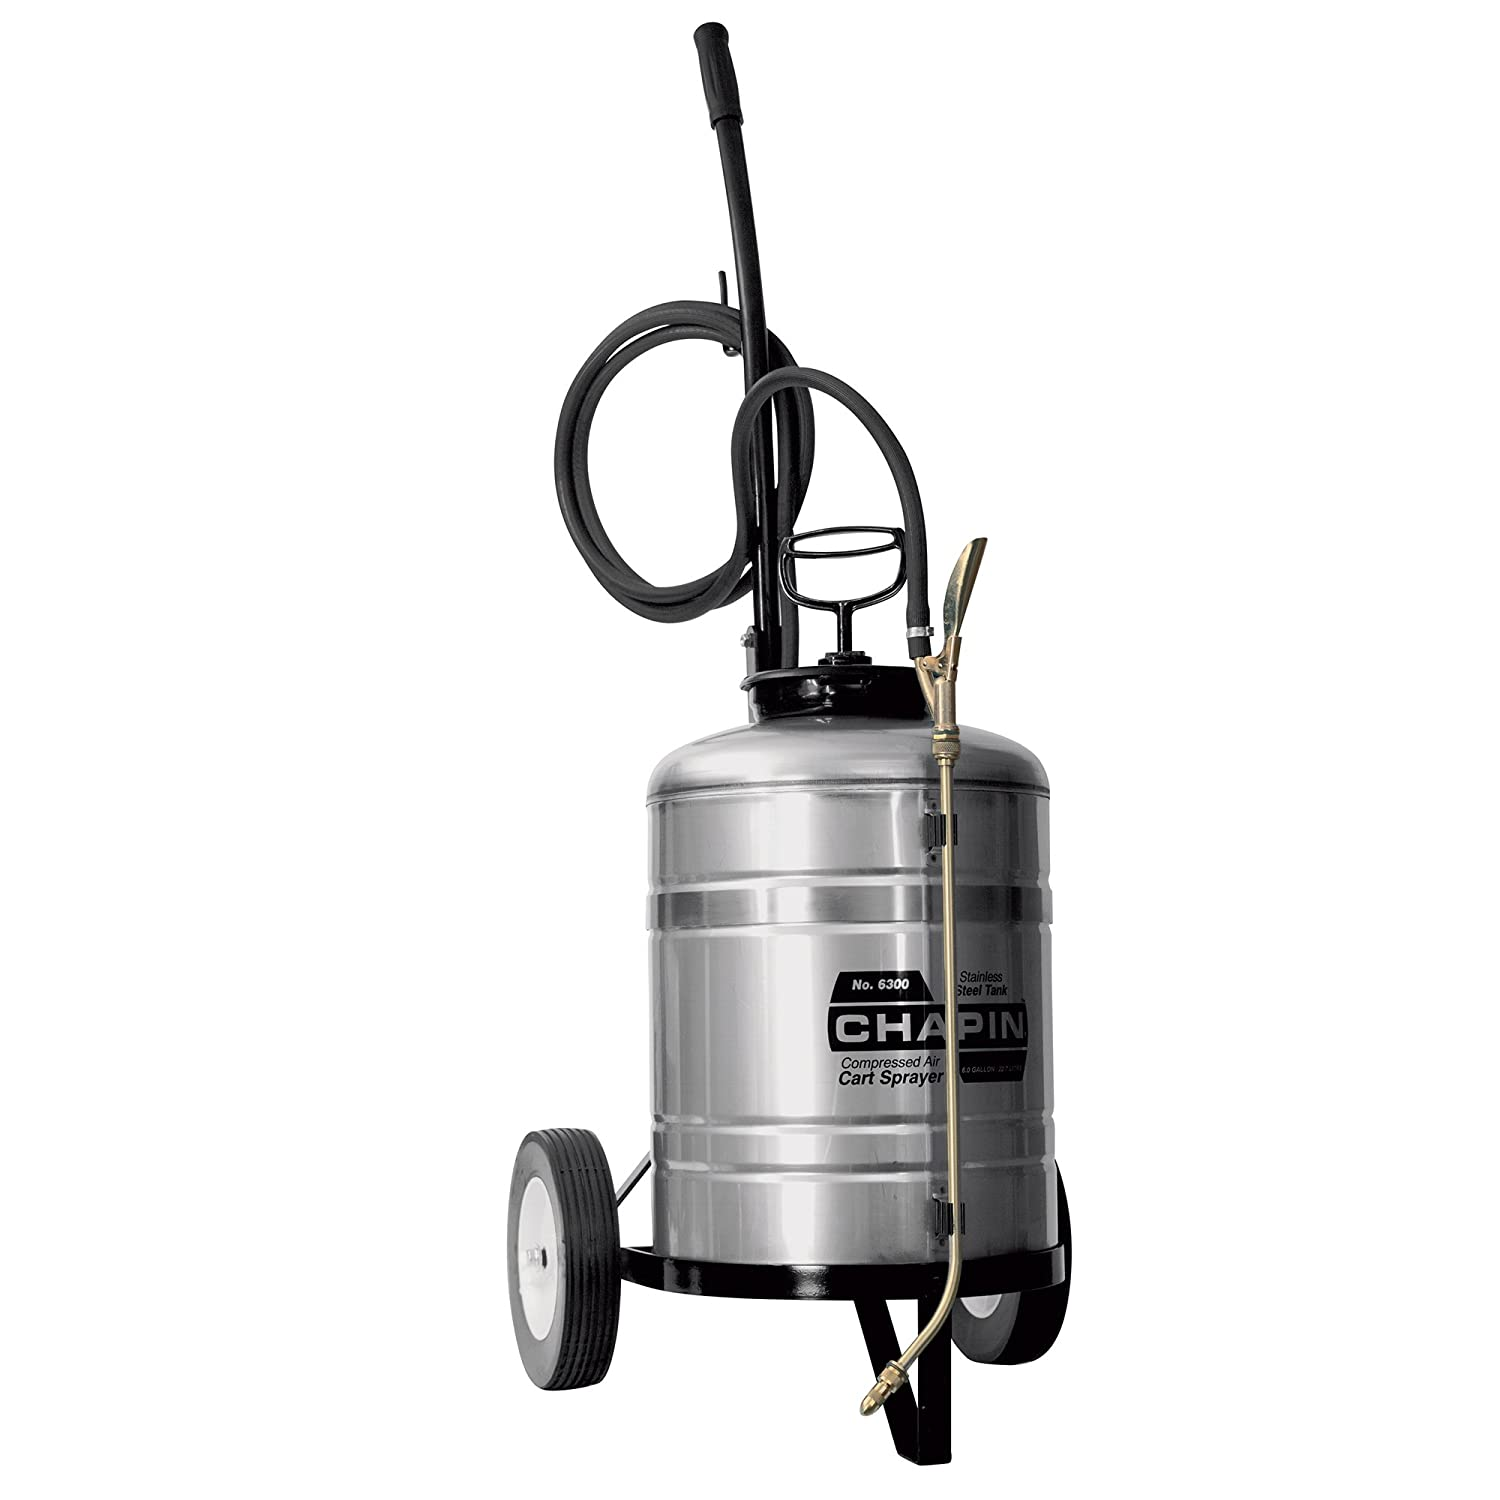 Chapin 6300 Industrial 6-Gallon Stainless Steel Cart Sprayer for Fertilizer, Herbicides and Pesticides, 6-Gallon (1 Sprayer/Package)